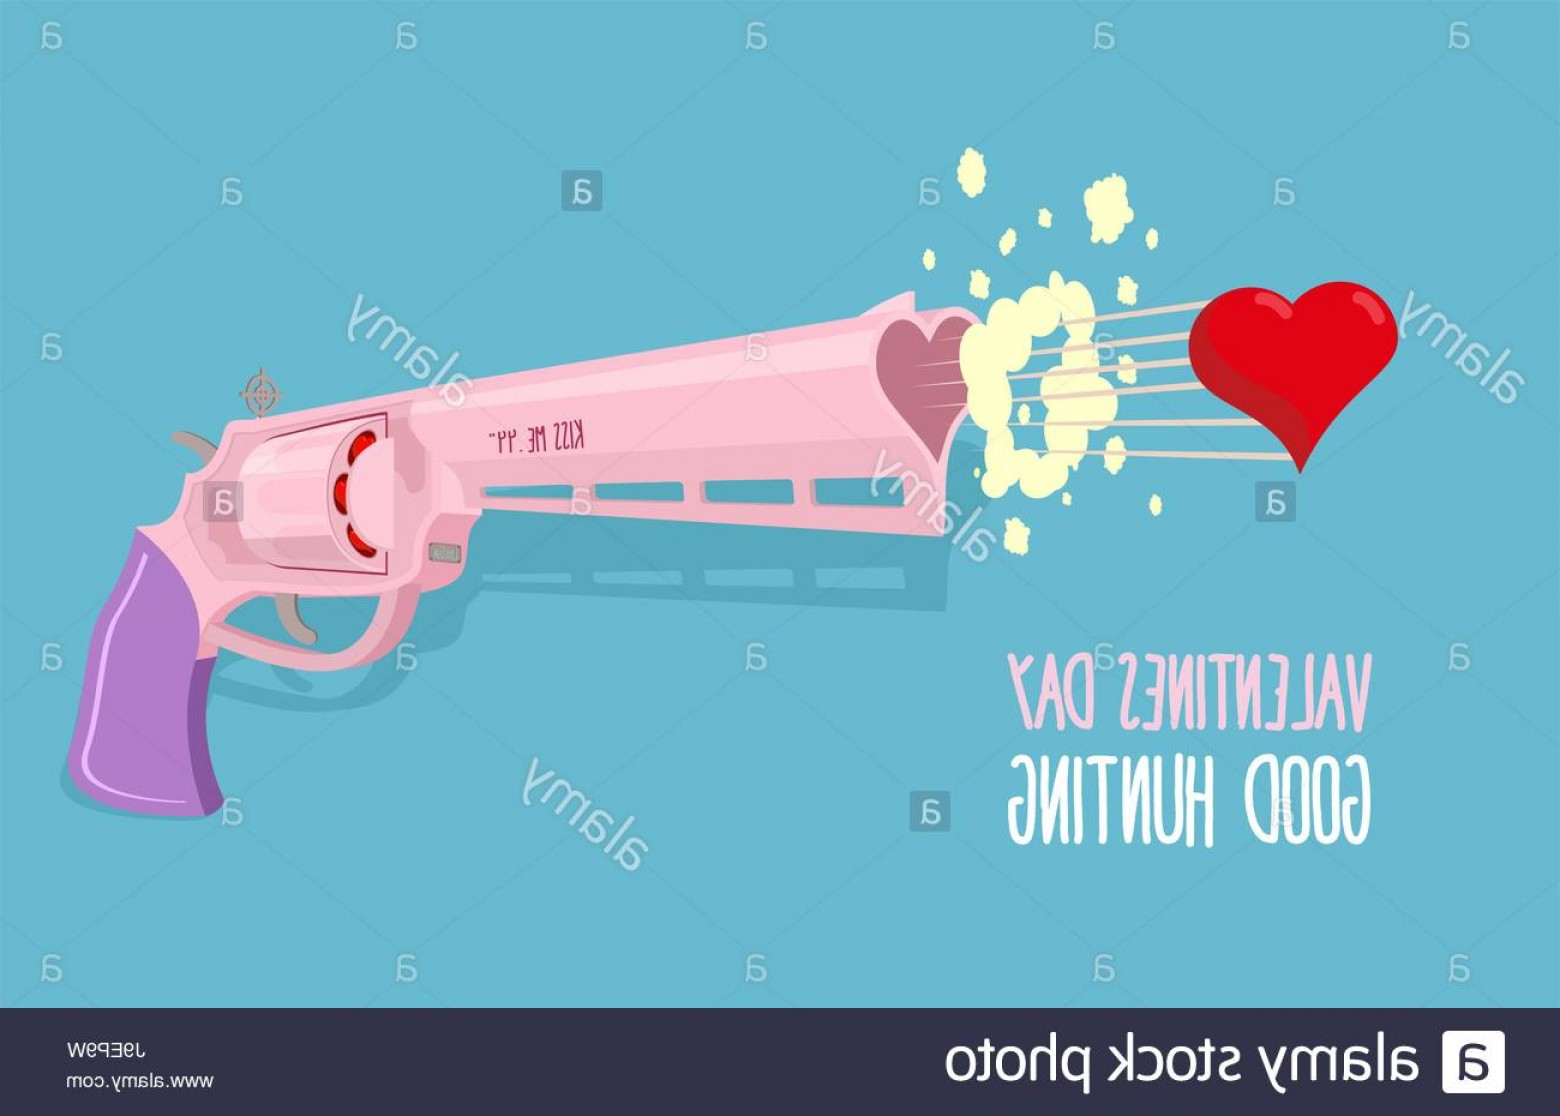 Hunting Heart Vector: Stock Photo Love Gun Valentines Day Gun Shoots At Heart Good Hunting Vector Illustration